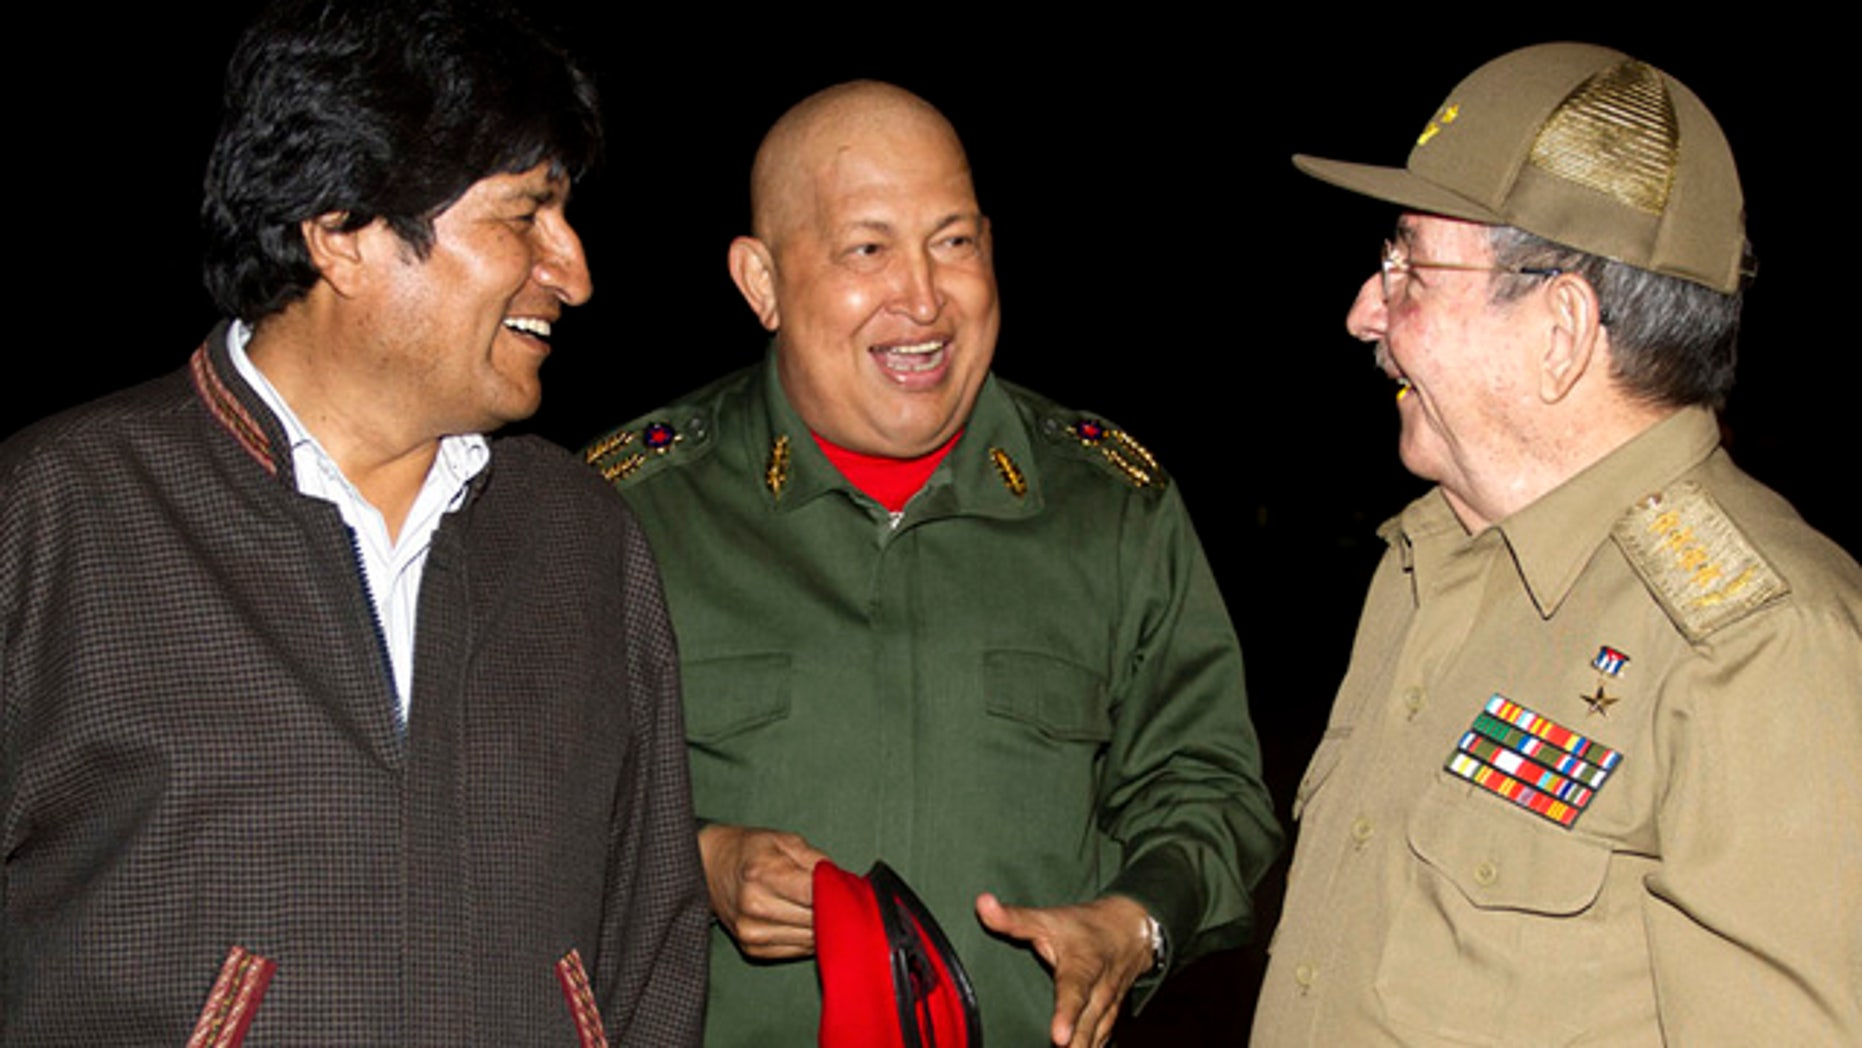 Sept. 18: In this picture released by the Agencia Boliviana de Informacion, Latin America  leaders, from left, Bolivia's President Evo Morales, Hugo Chavez and Cuba's President Raul Castro speak at the Jose Marti airport in Havana, Cuba.